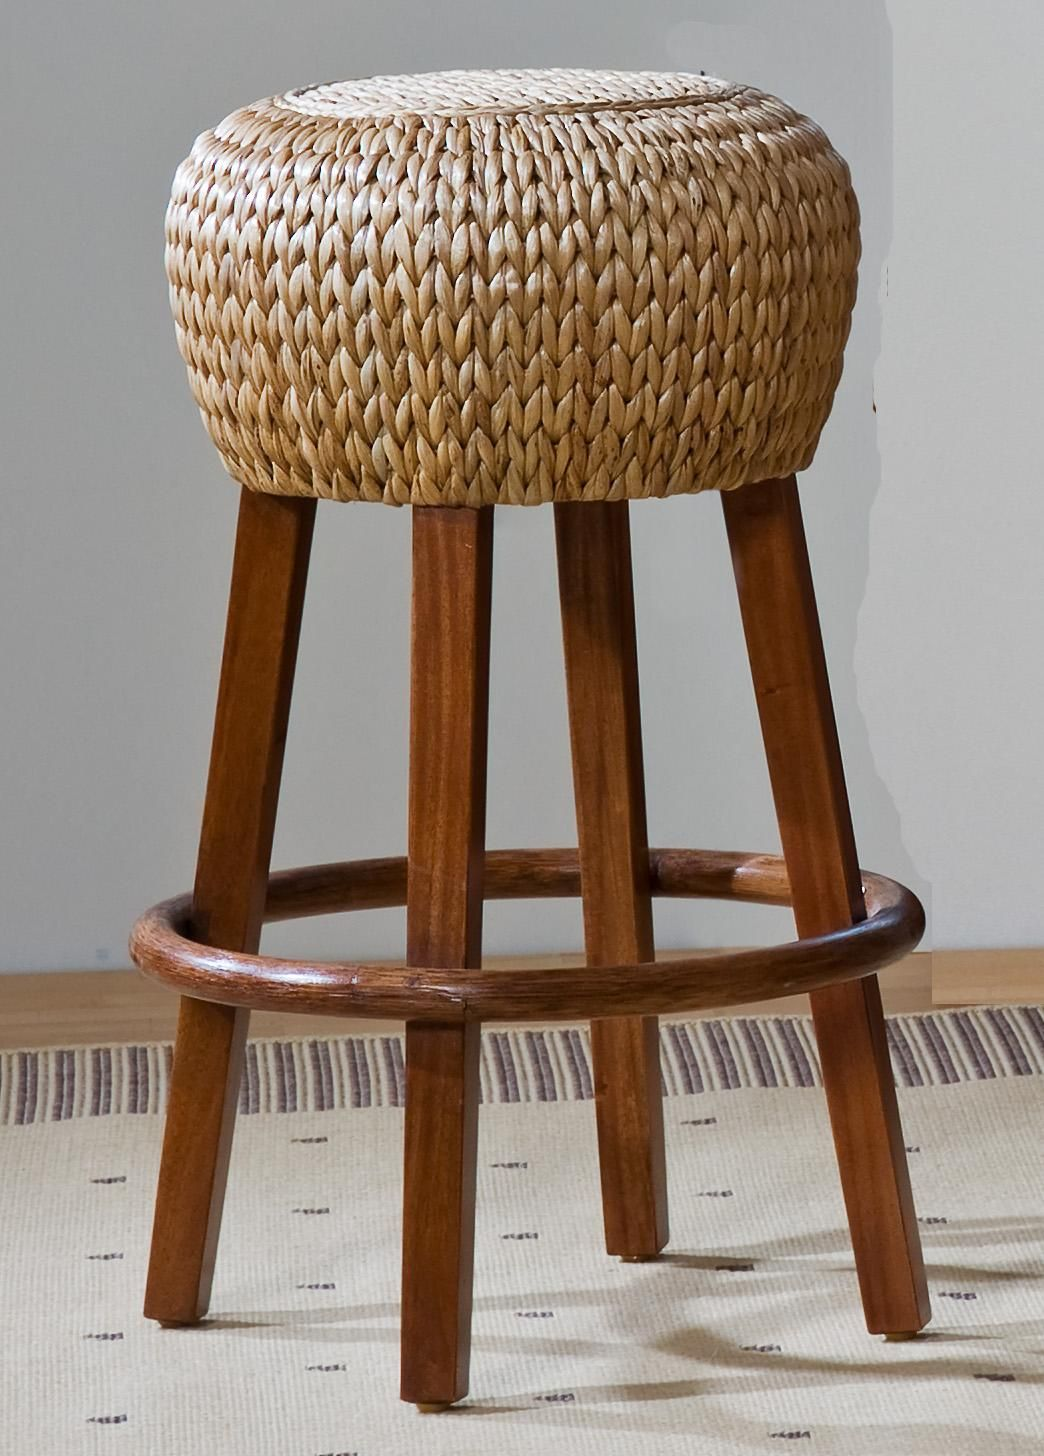 Delightful Round Rattan Bar Stool Design Idea With Four Wood Legs And Base